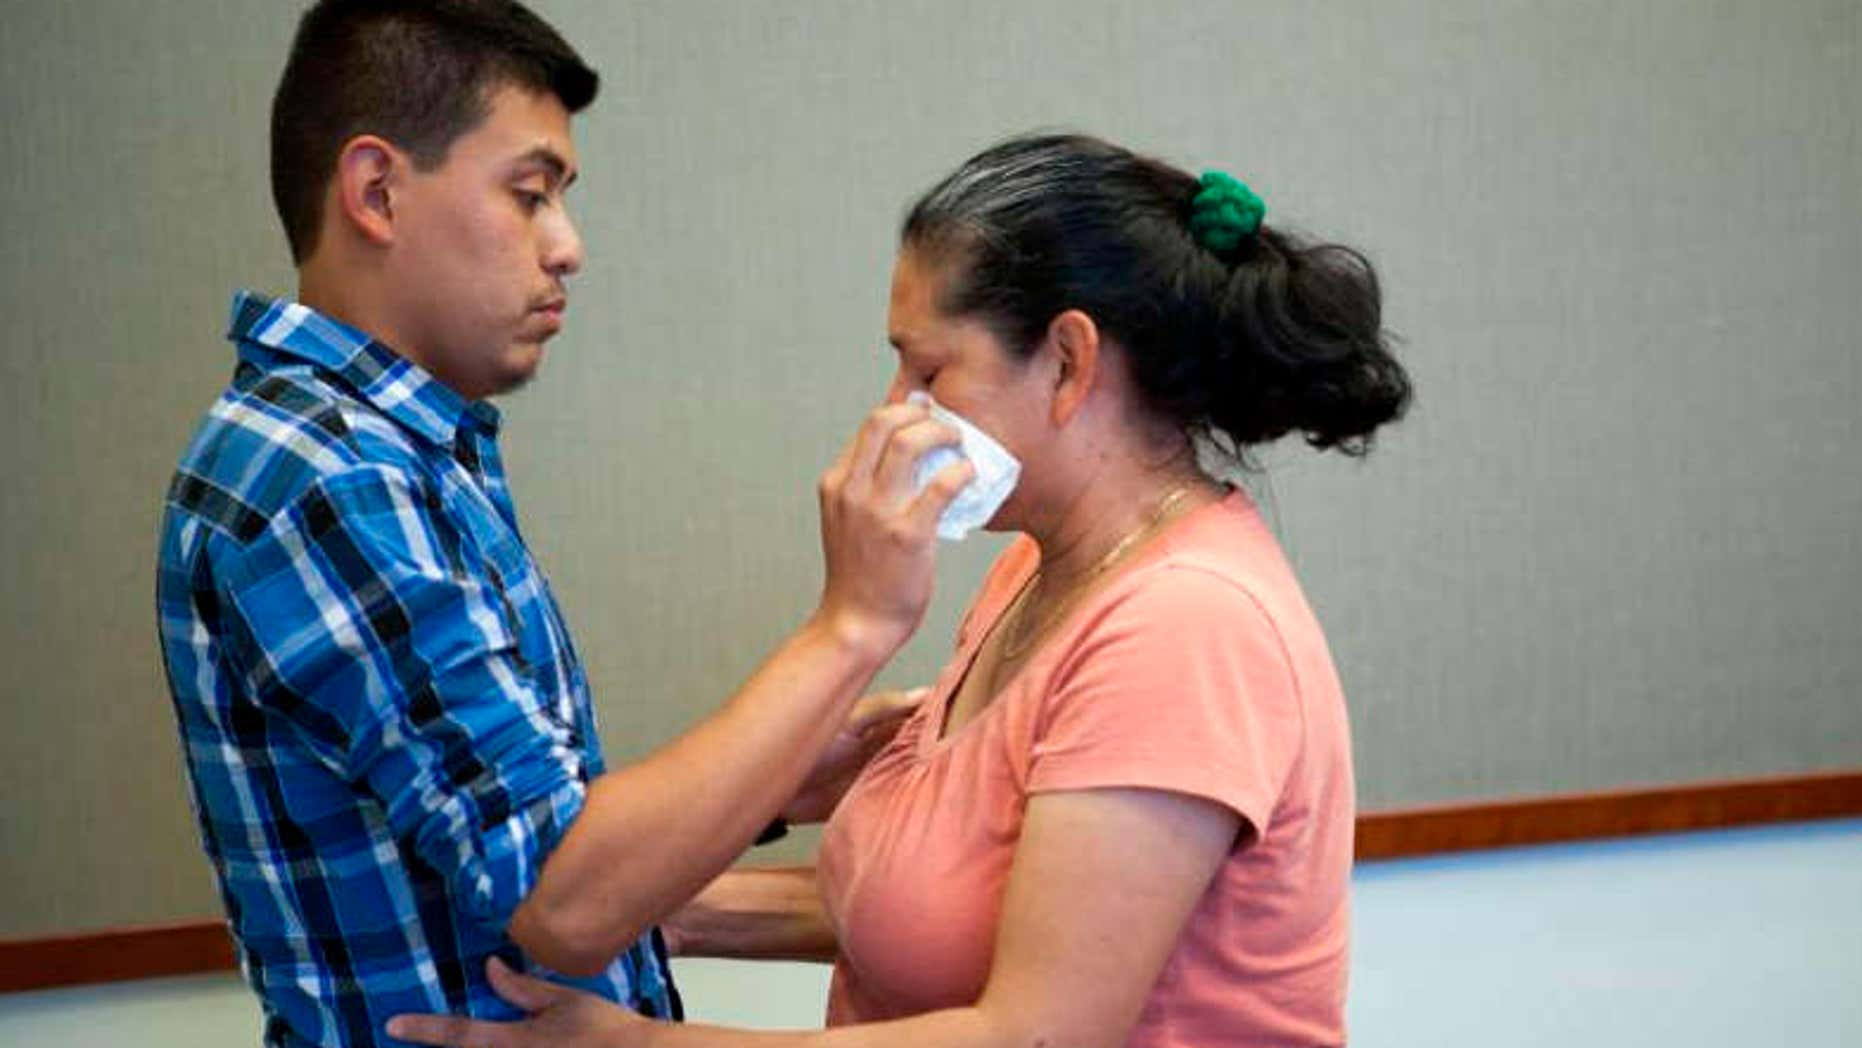 June 9, 2016: Steve Hernandez wipes a tear from his mother's eye after seeing her for the first time in 20 years in San Diego, Calif..